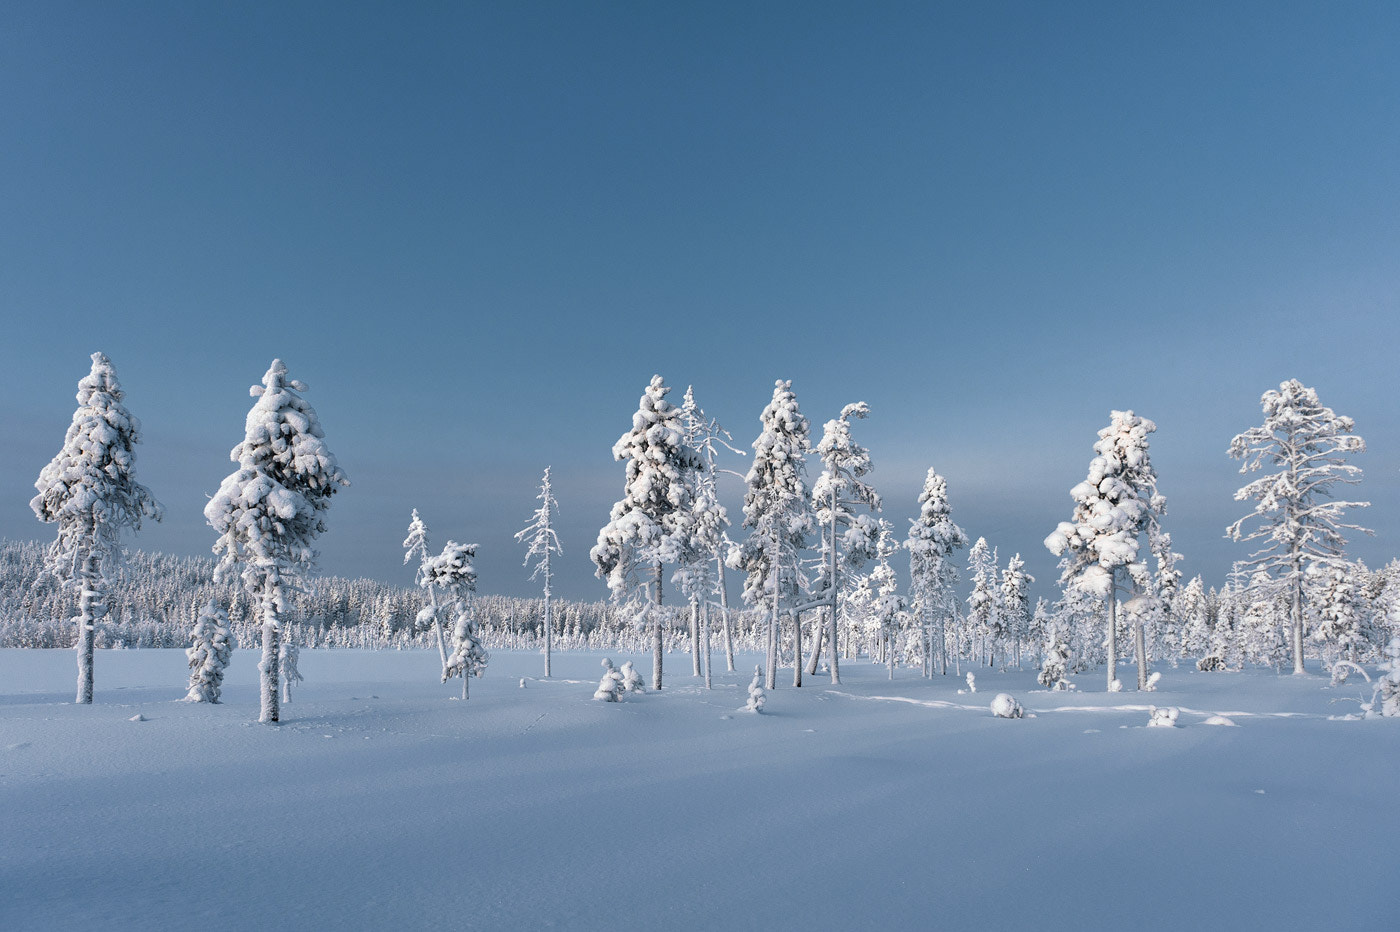 Photograph Frozen Magic Trees by Dominik Orth on 500px